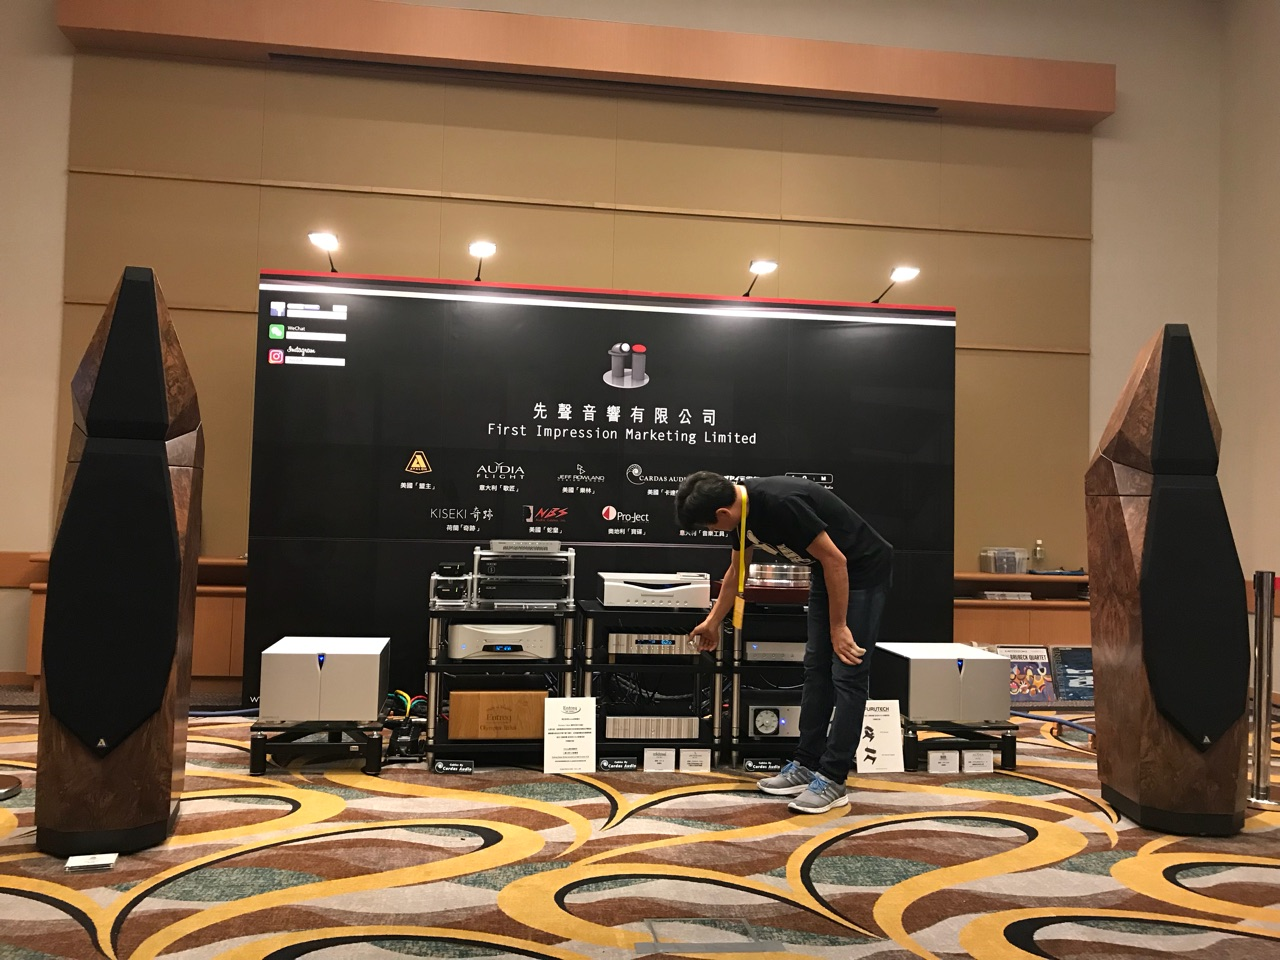 Hong Kong High-End Audio Visual Show 2018 hay